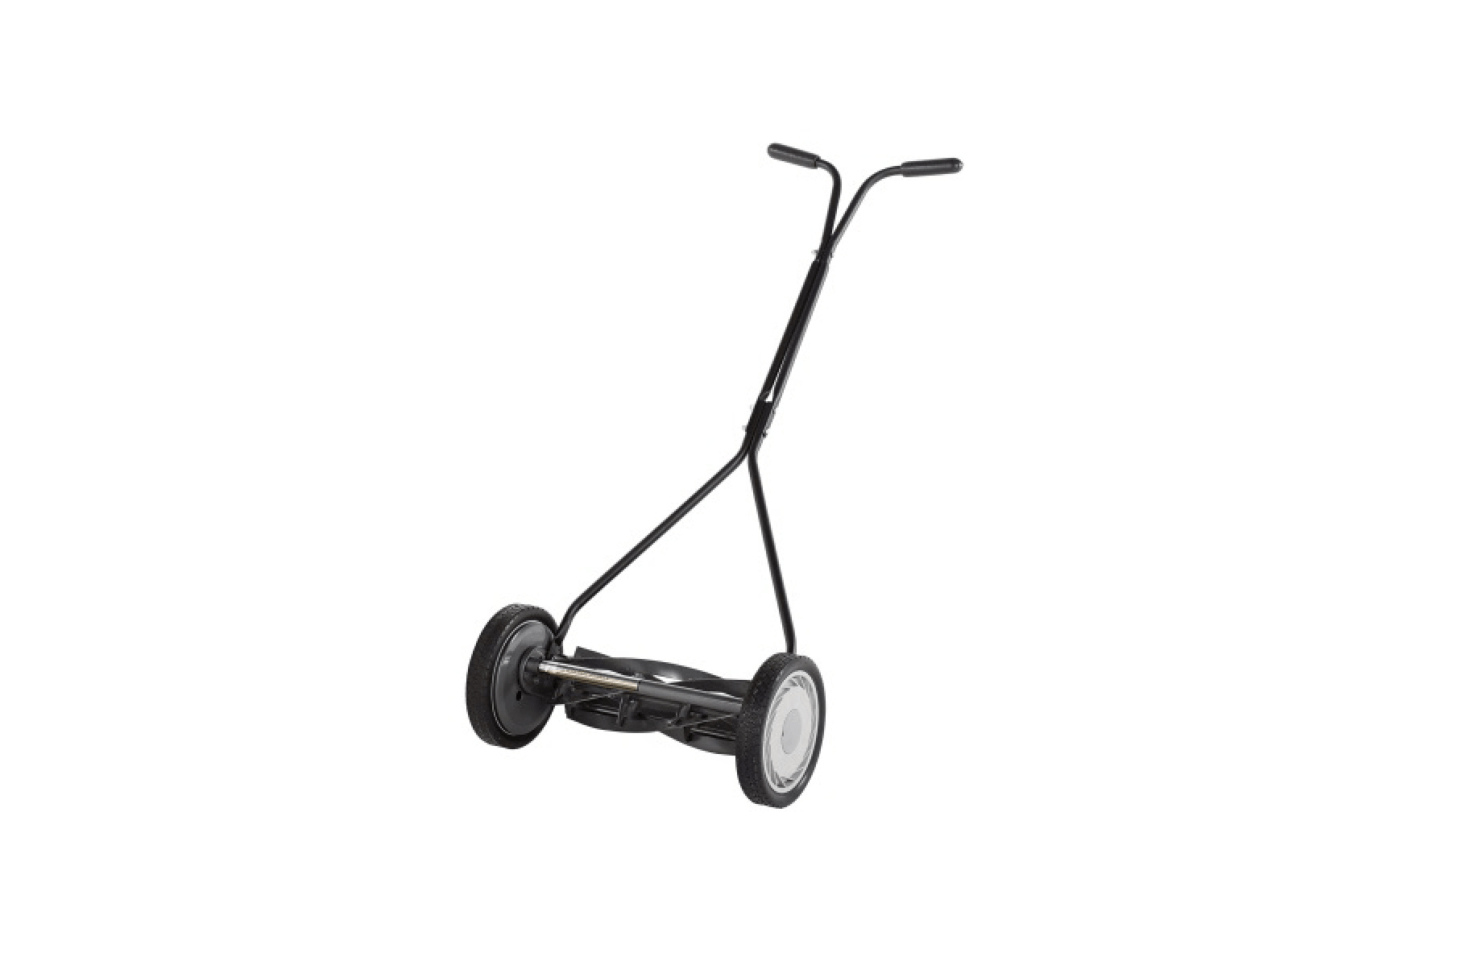 From American Lawn Mower, a -inch Reel Mower comes with a sharpening kit; $9.99 from Ace Hardware.